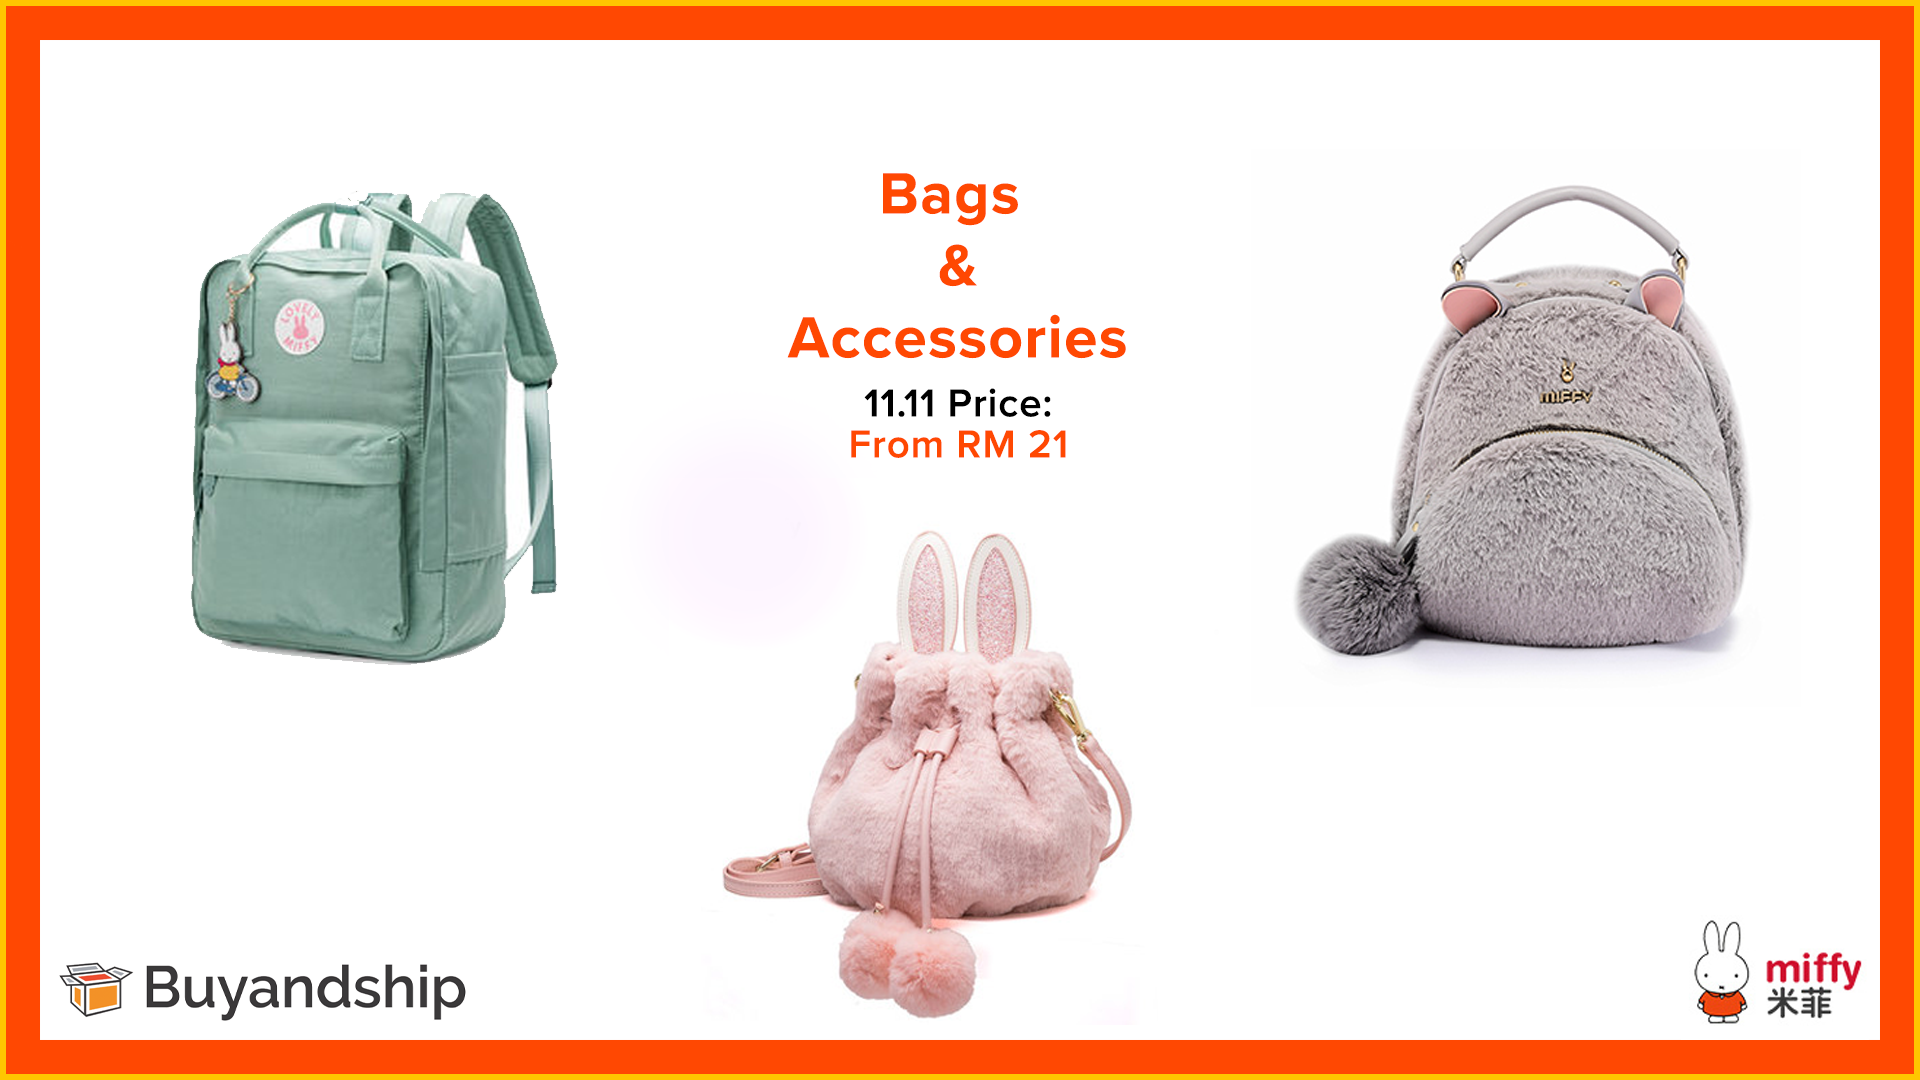 11.11 Sale 2019 -Miffy Luggage Store